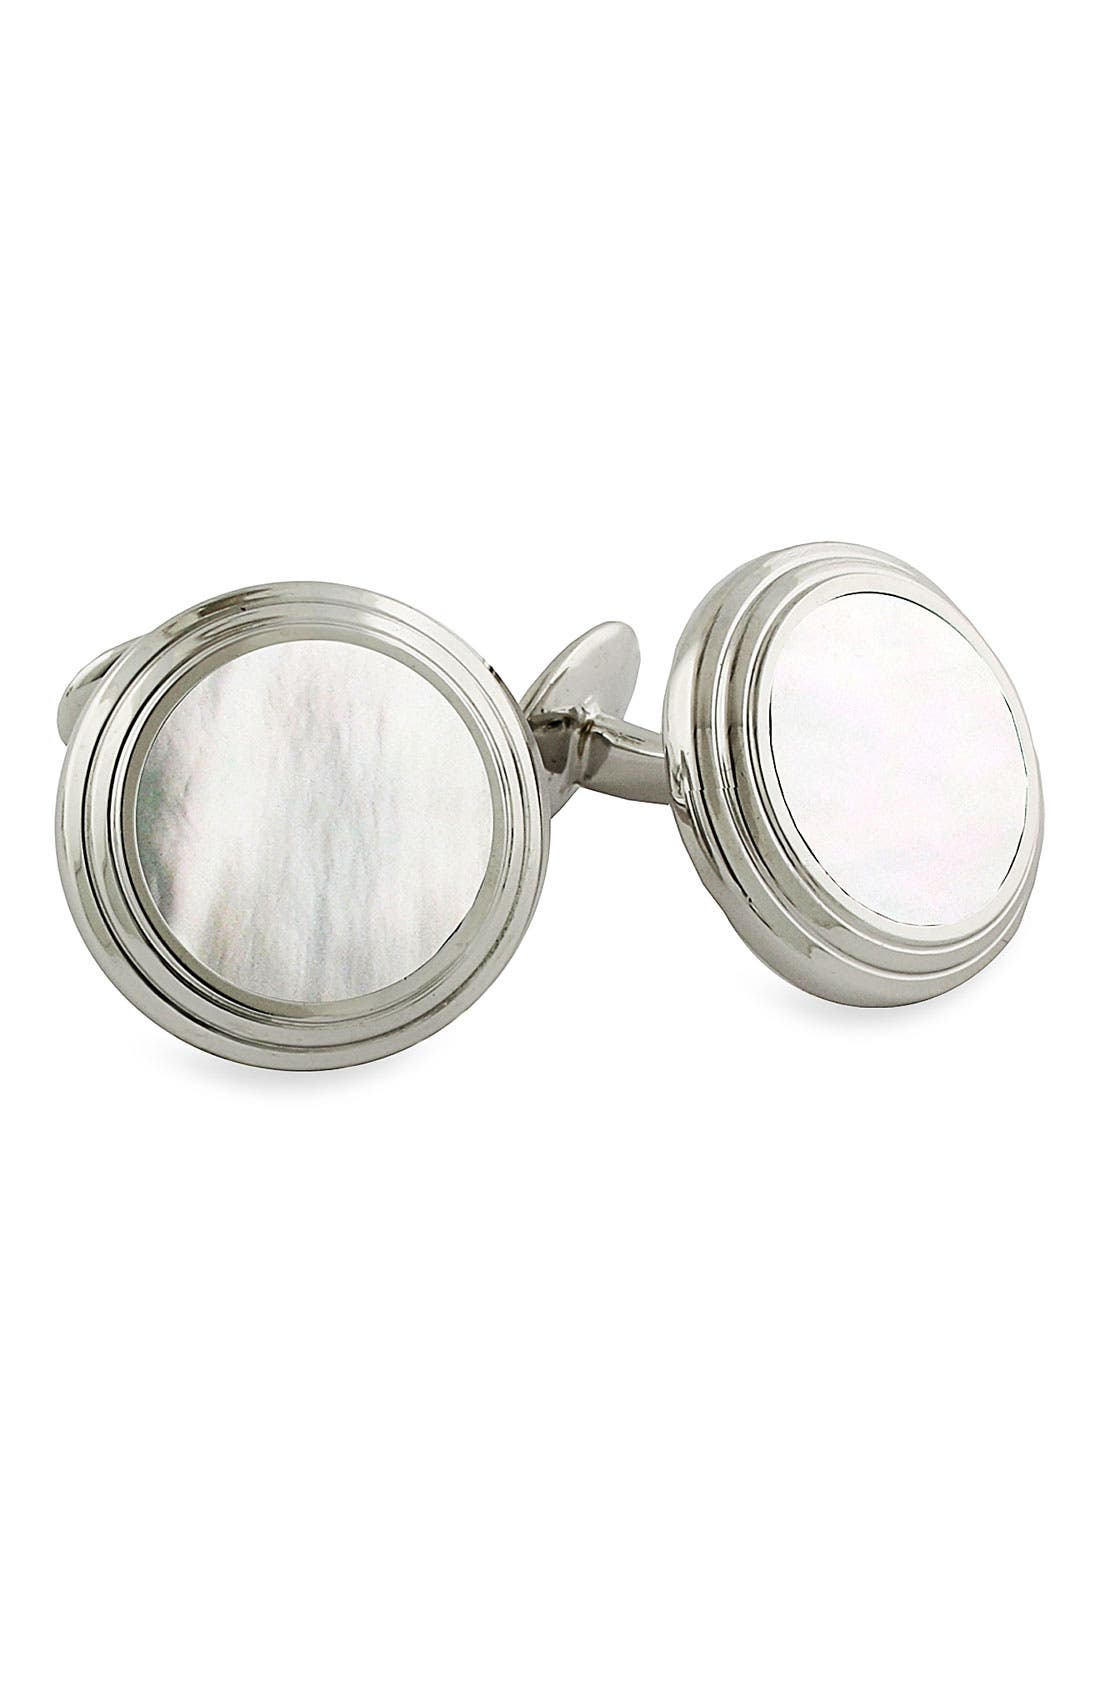 Main Image - David Donahue Mother-of-Pearl Cuff Links